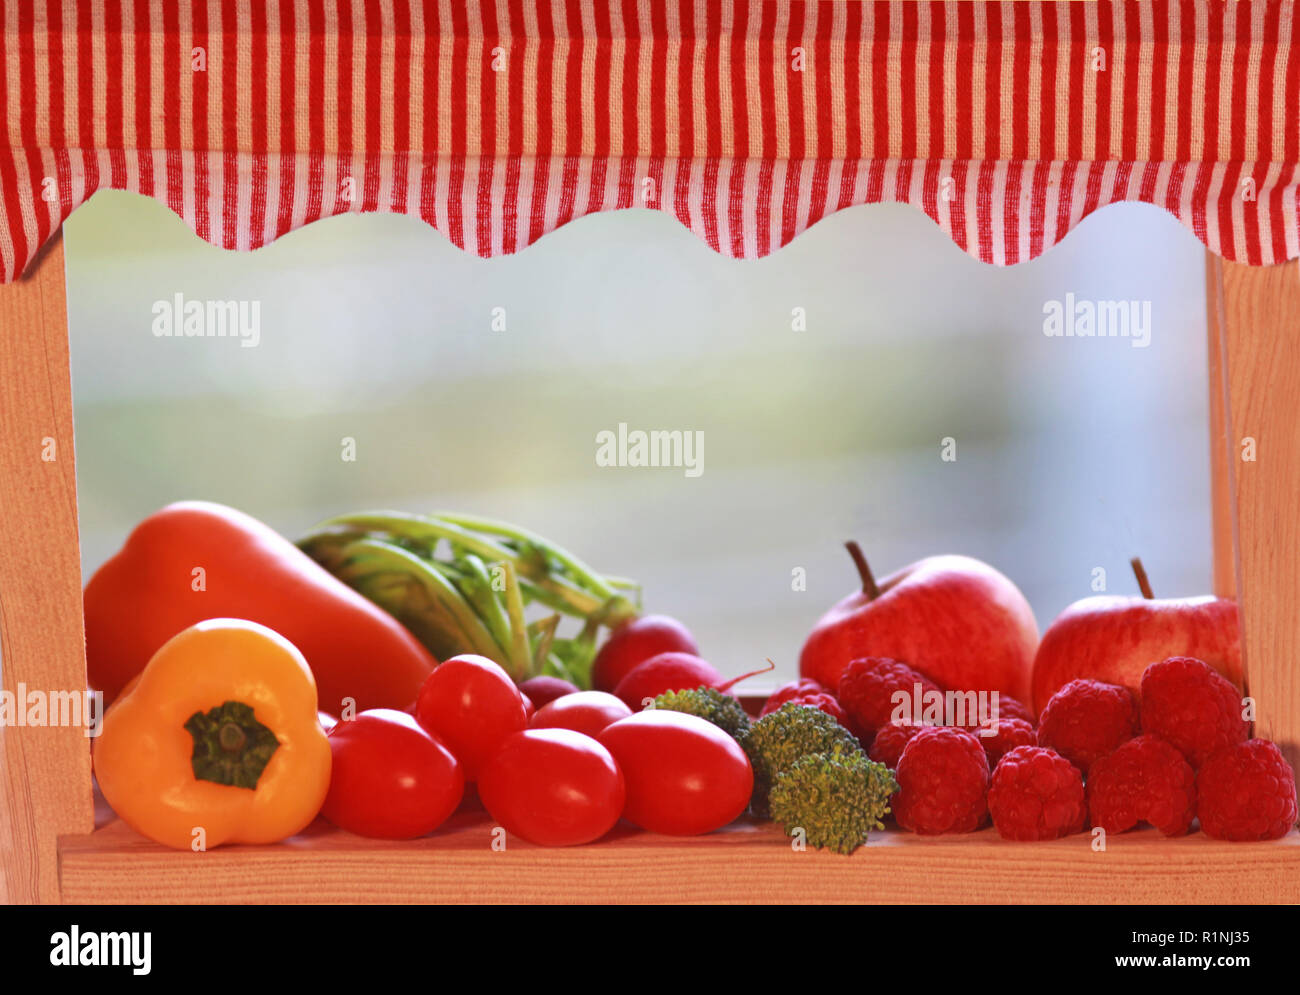 miniature market stall with various fruits and vegetables, close-up, background with copy space - Stock Image